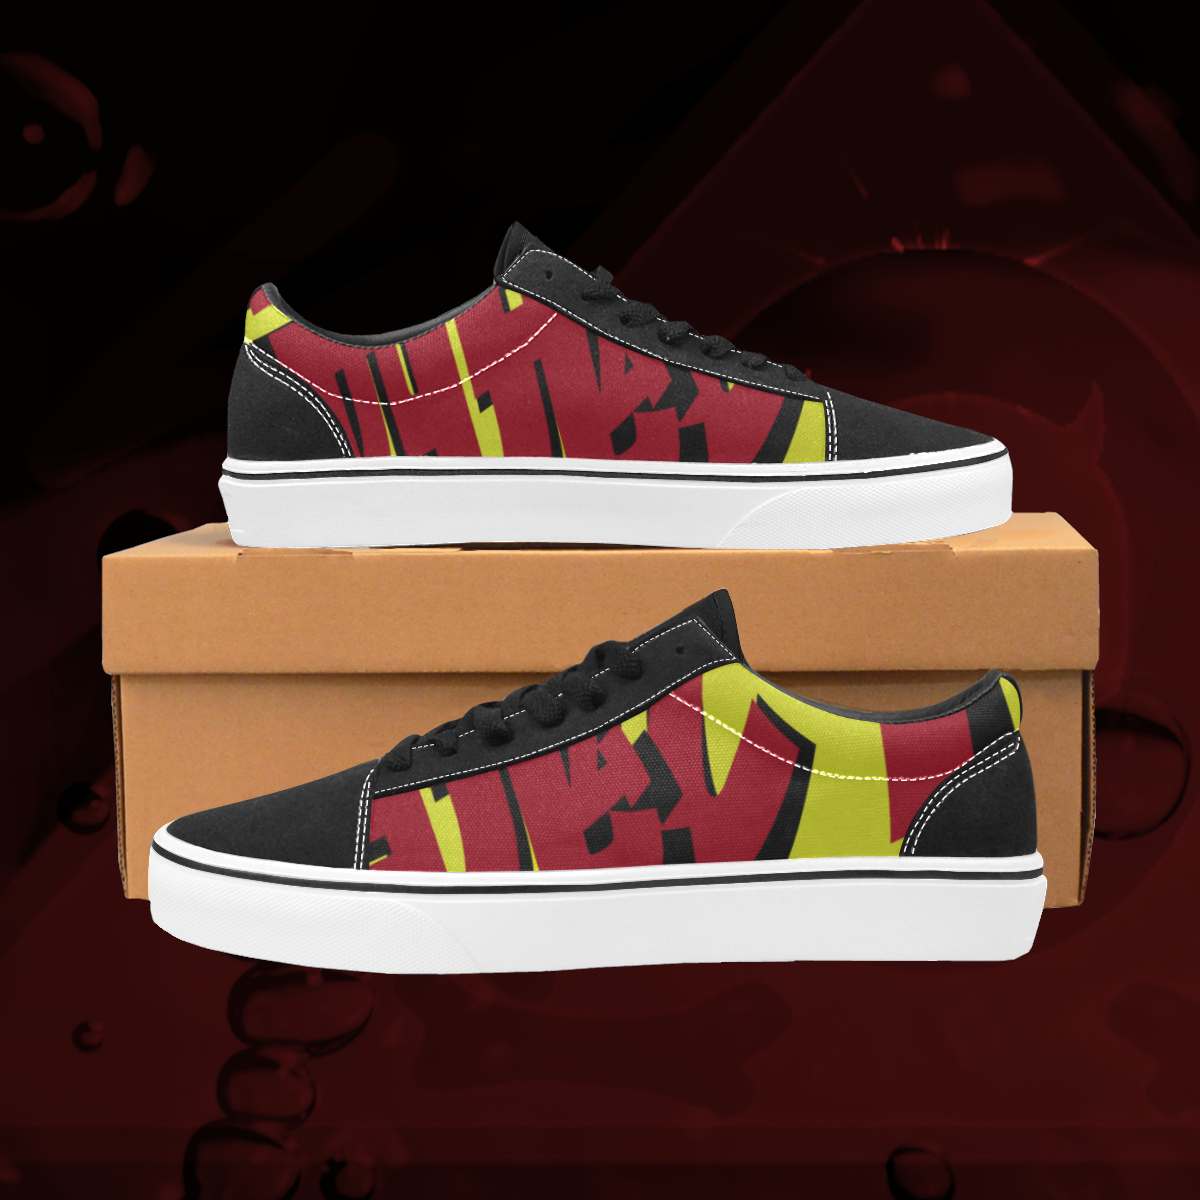 UGLY logo low top skate shoes The Lowest of Low